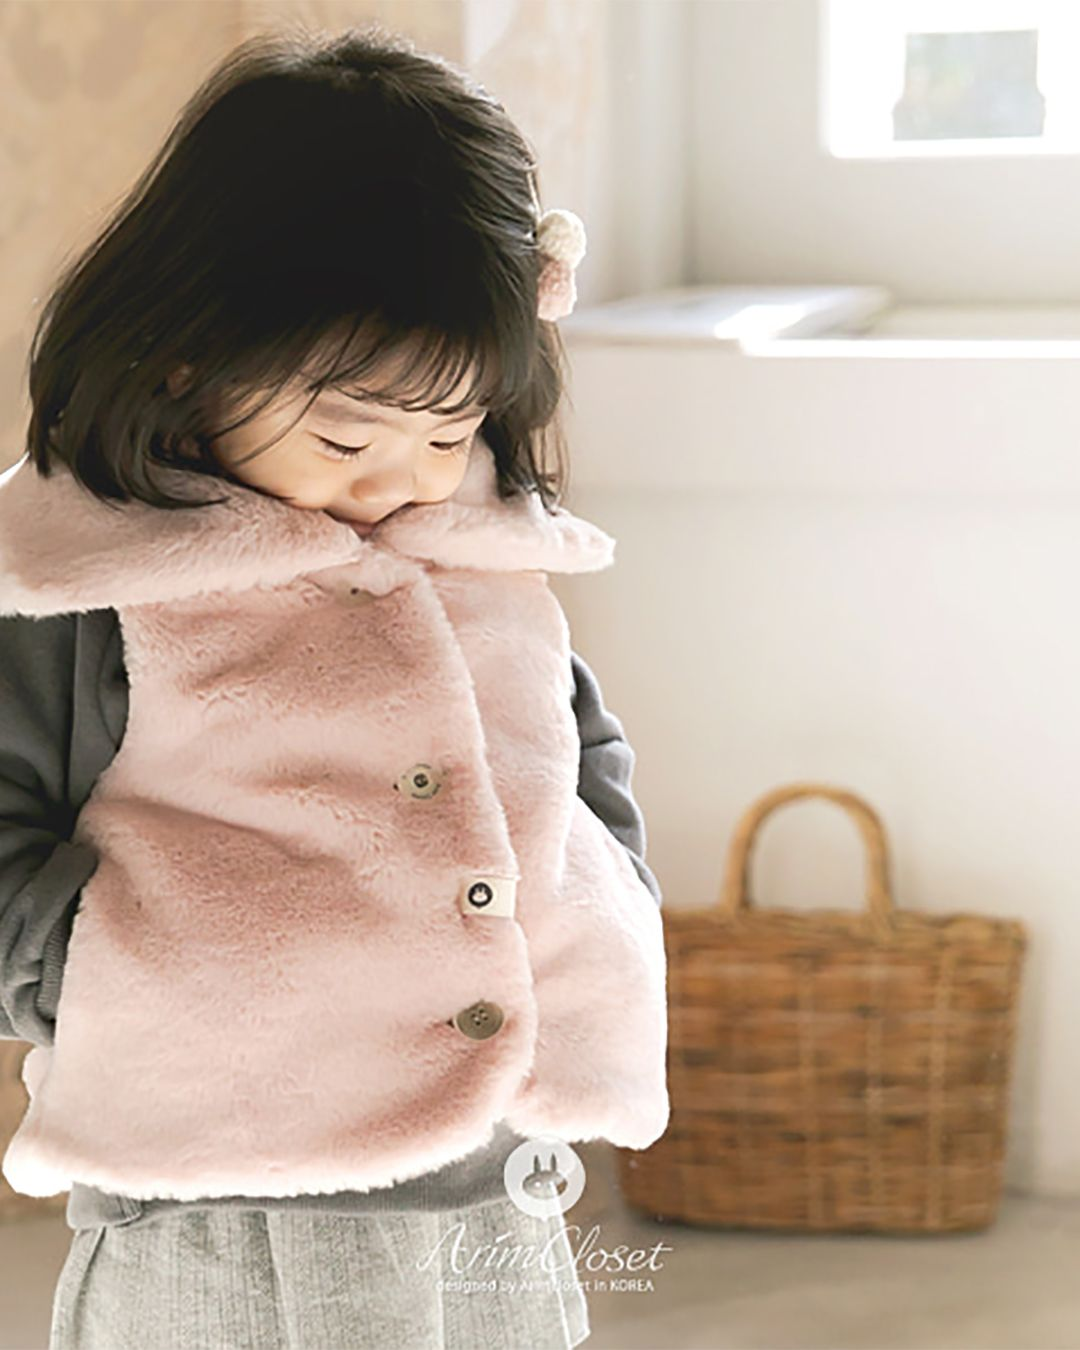 Arim Closet's newest warm, adorable and lovely baby coat